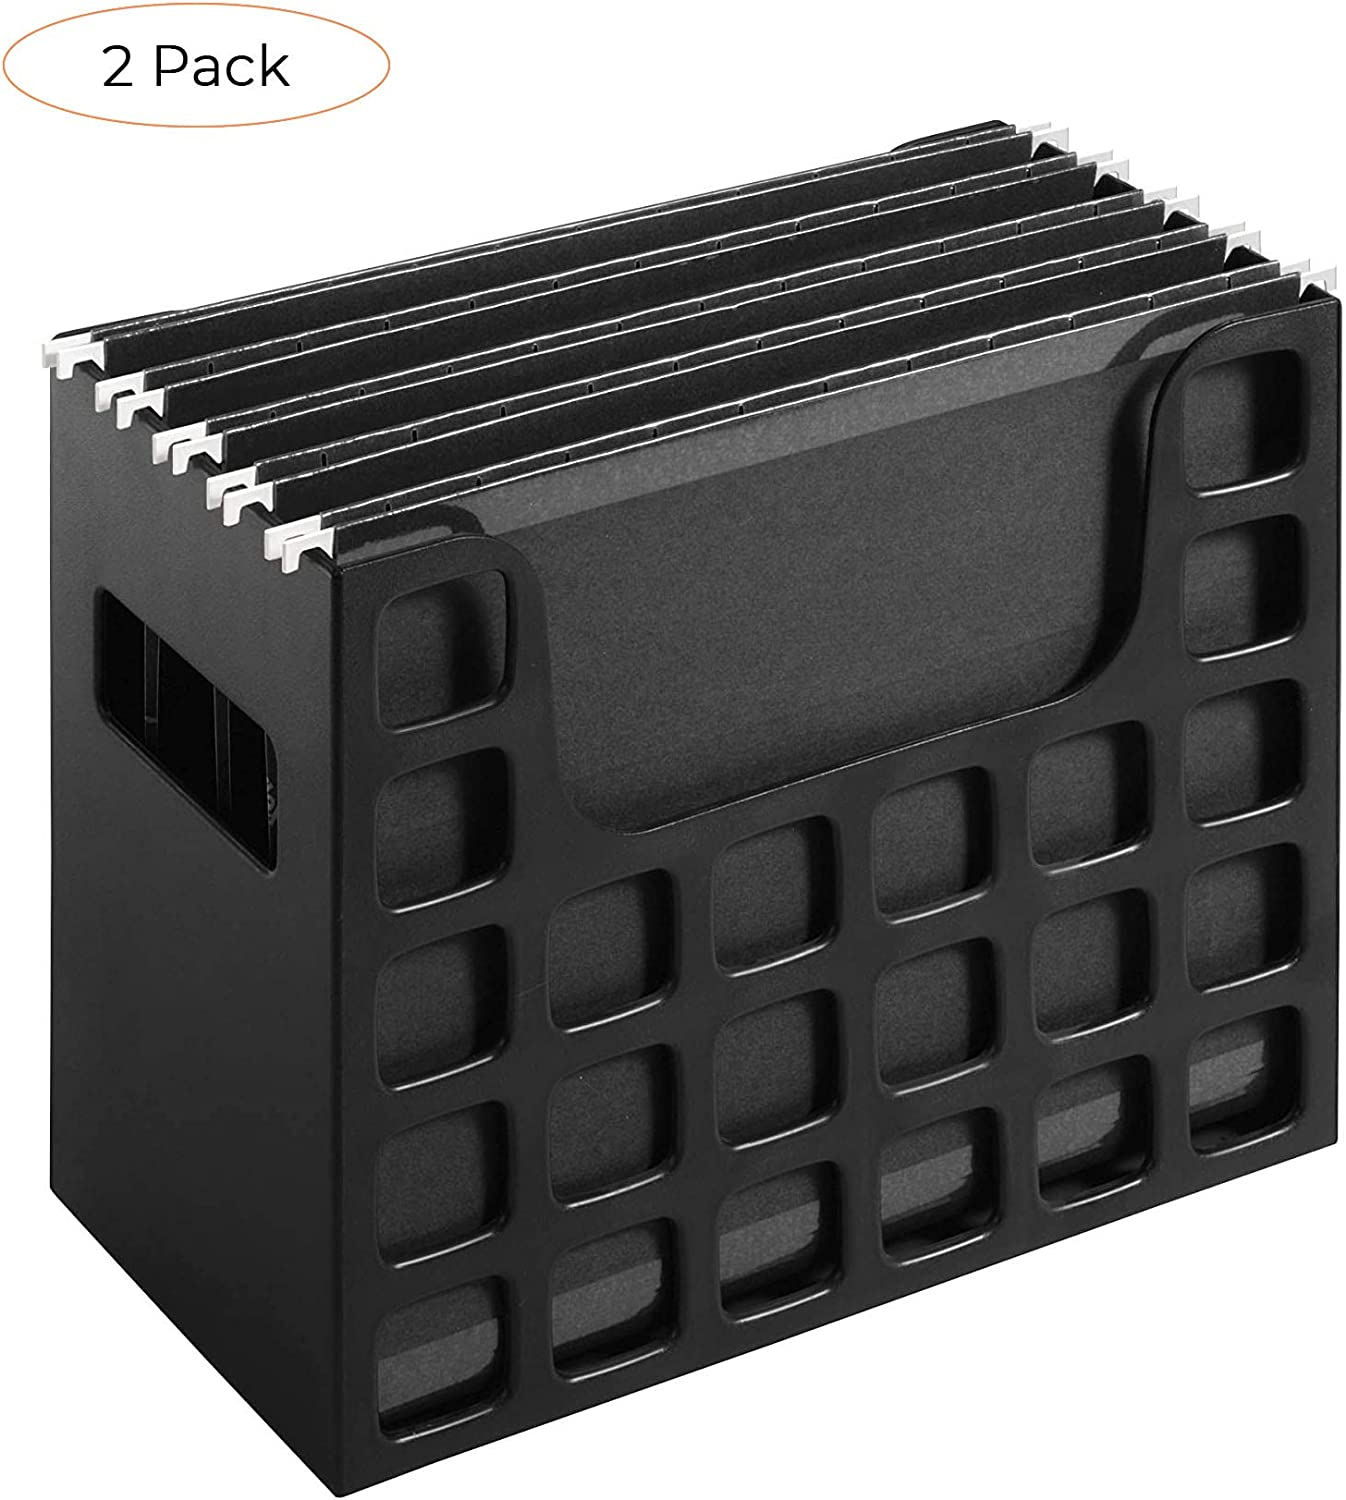 Pendaflex Portable Desktop File, Side Handles, Hanging File Folders, Tabs & Inserts, Letter Size, 9-1/2 Inches x 12-3/16 Inches x 6 Inches, Black (23013) (Twо Расk)